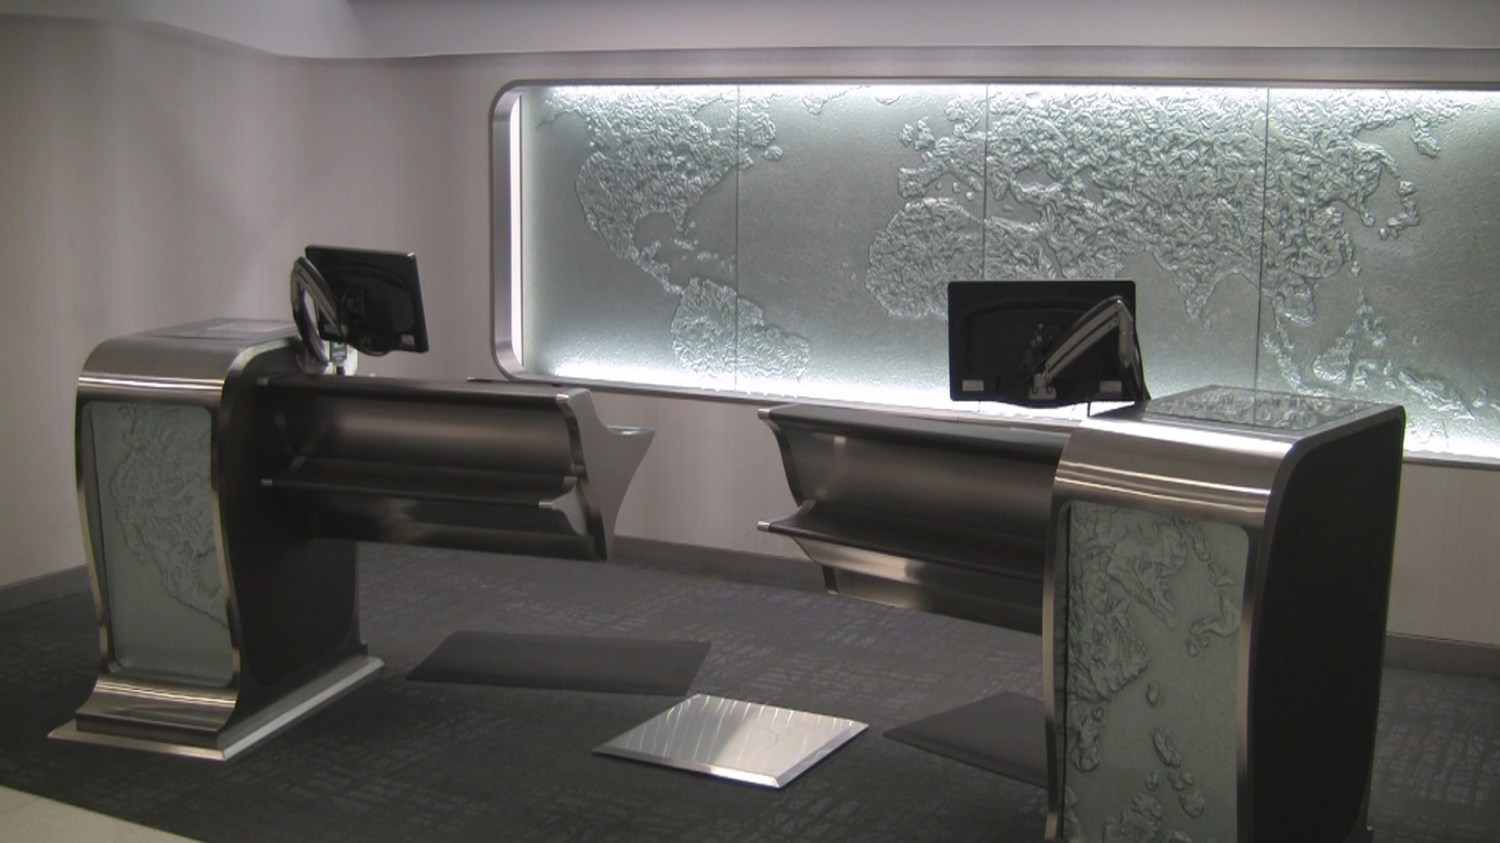 Counter at AA Flagship Check-in LAX